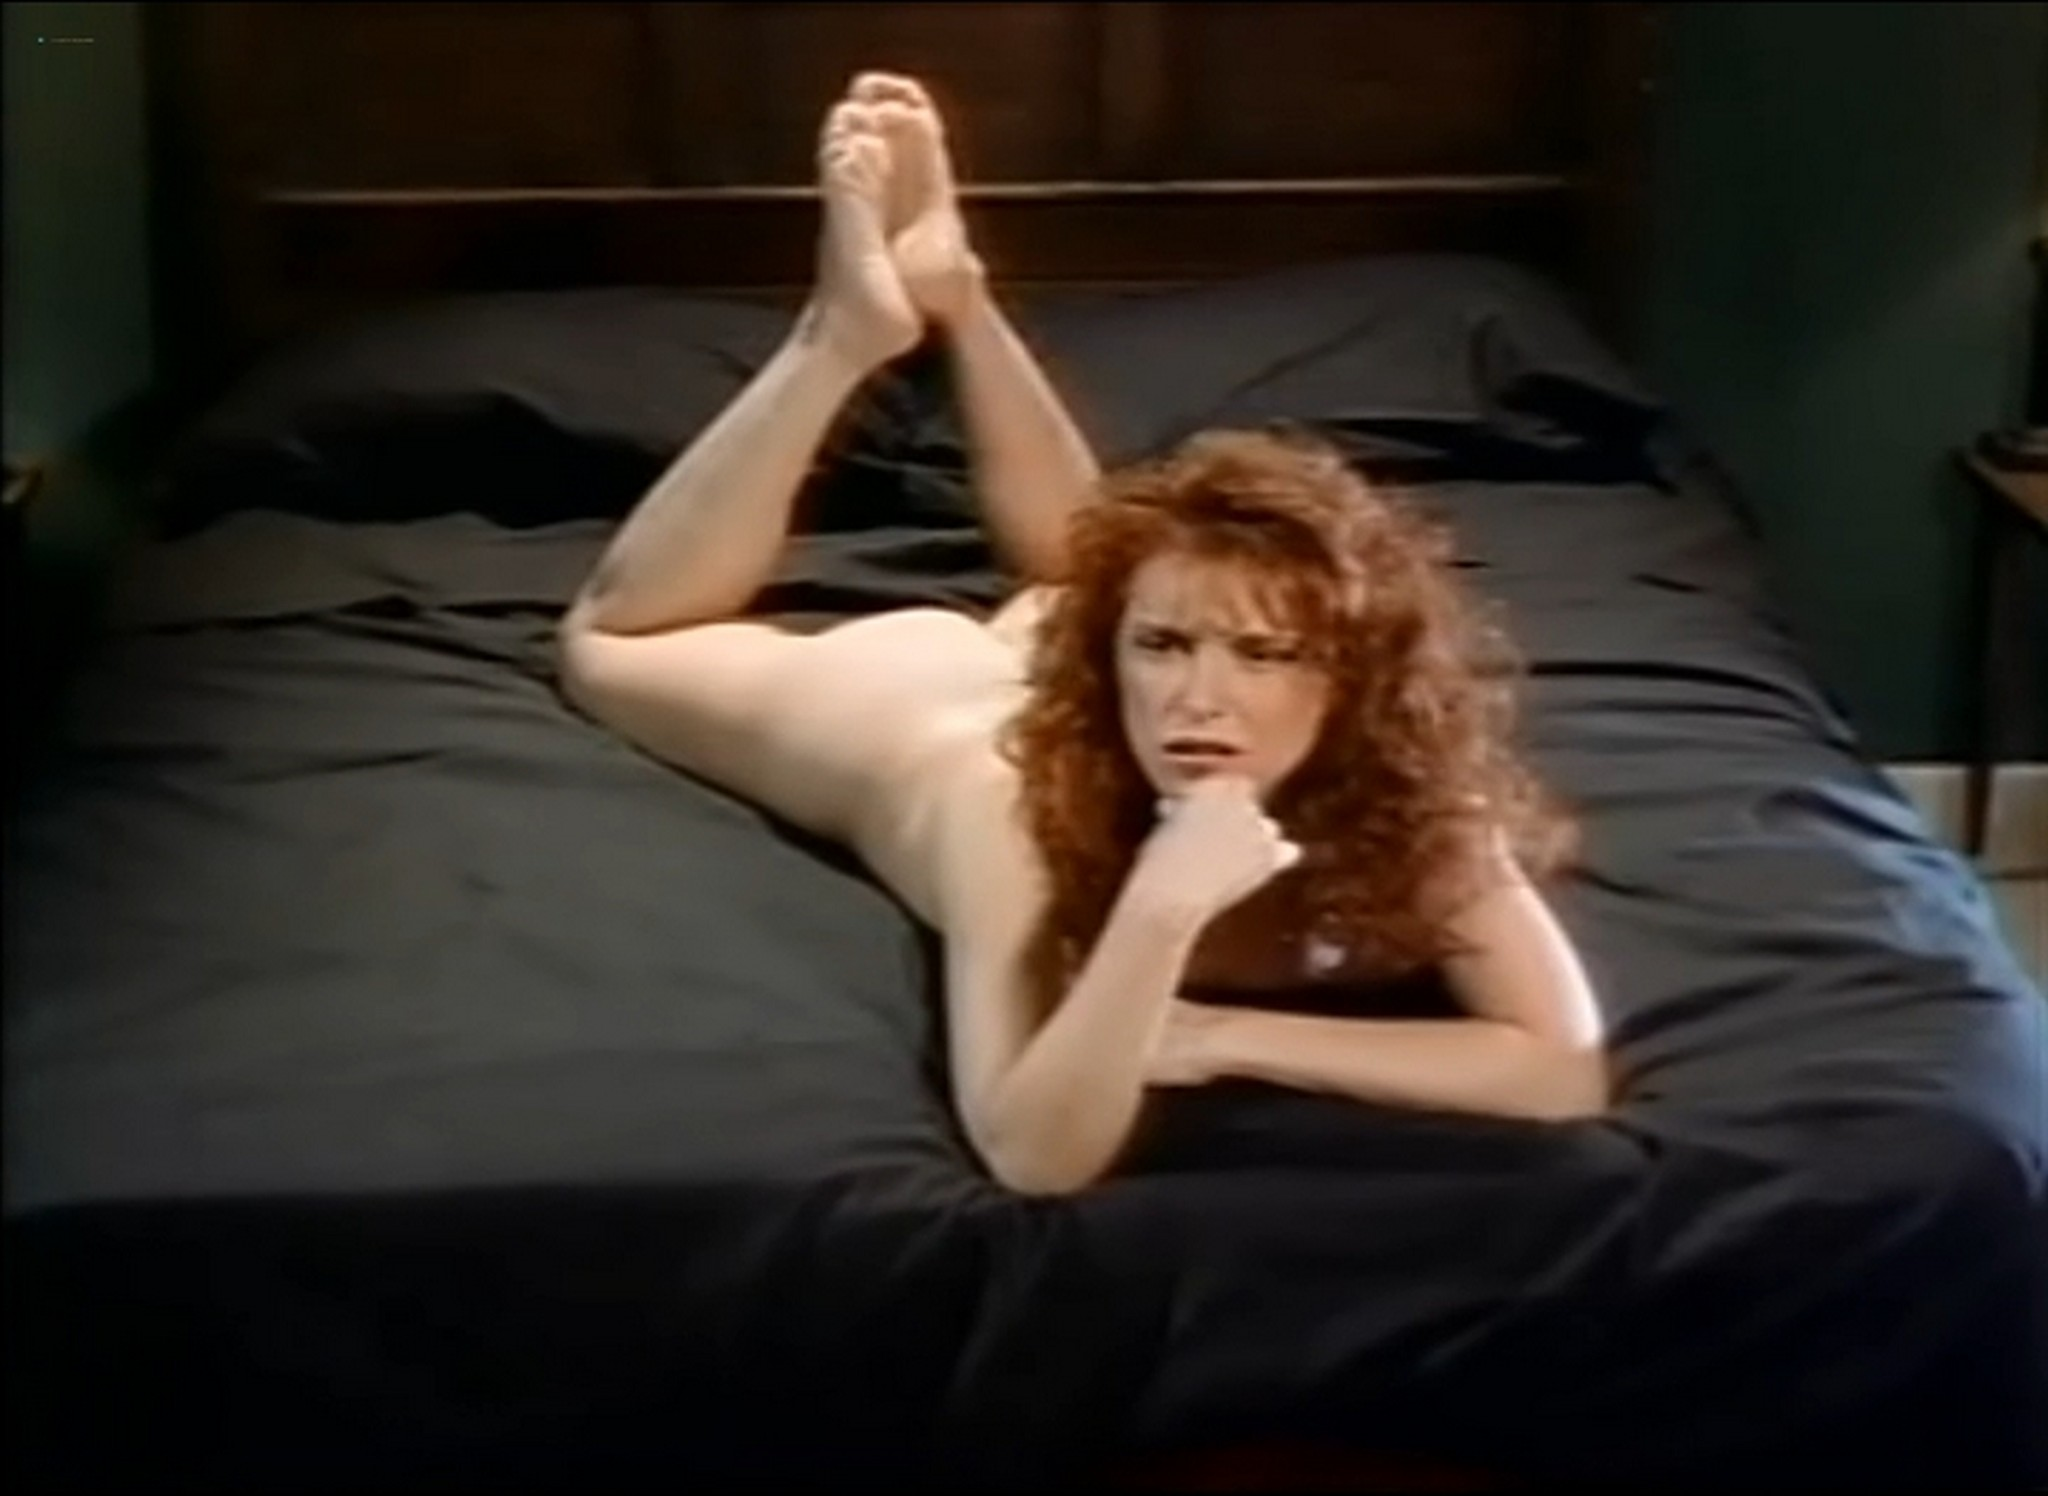 Debra K Beatty nude full frontal Kelly Jaye and others nude too Anthonys Desire 1993 TVRip 7